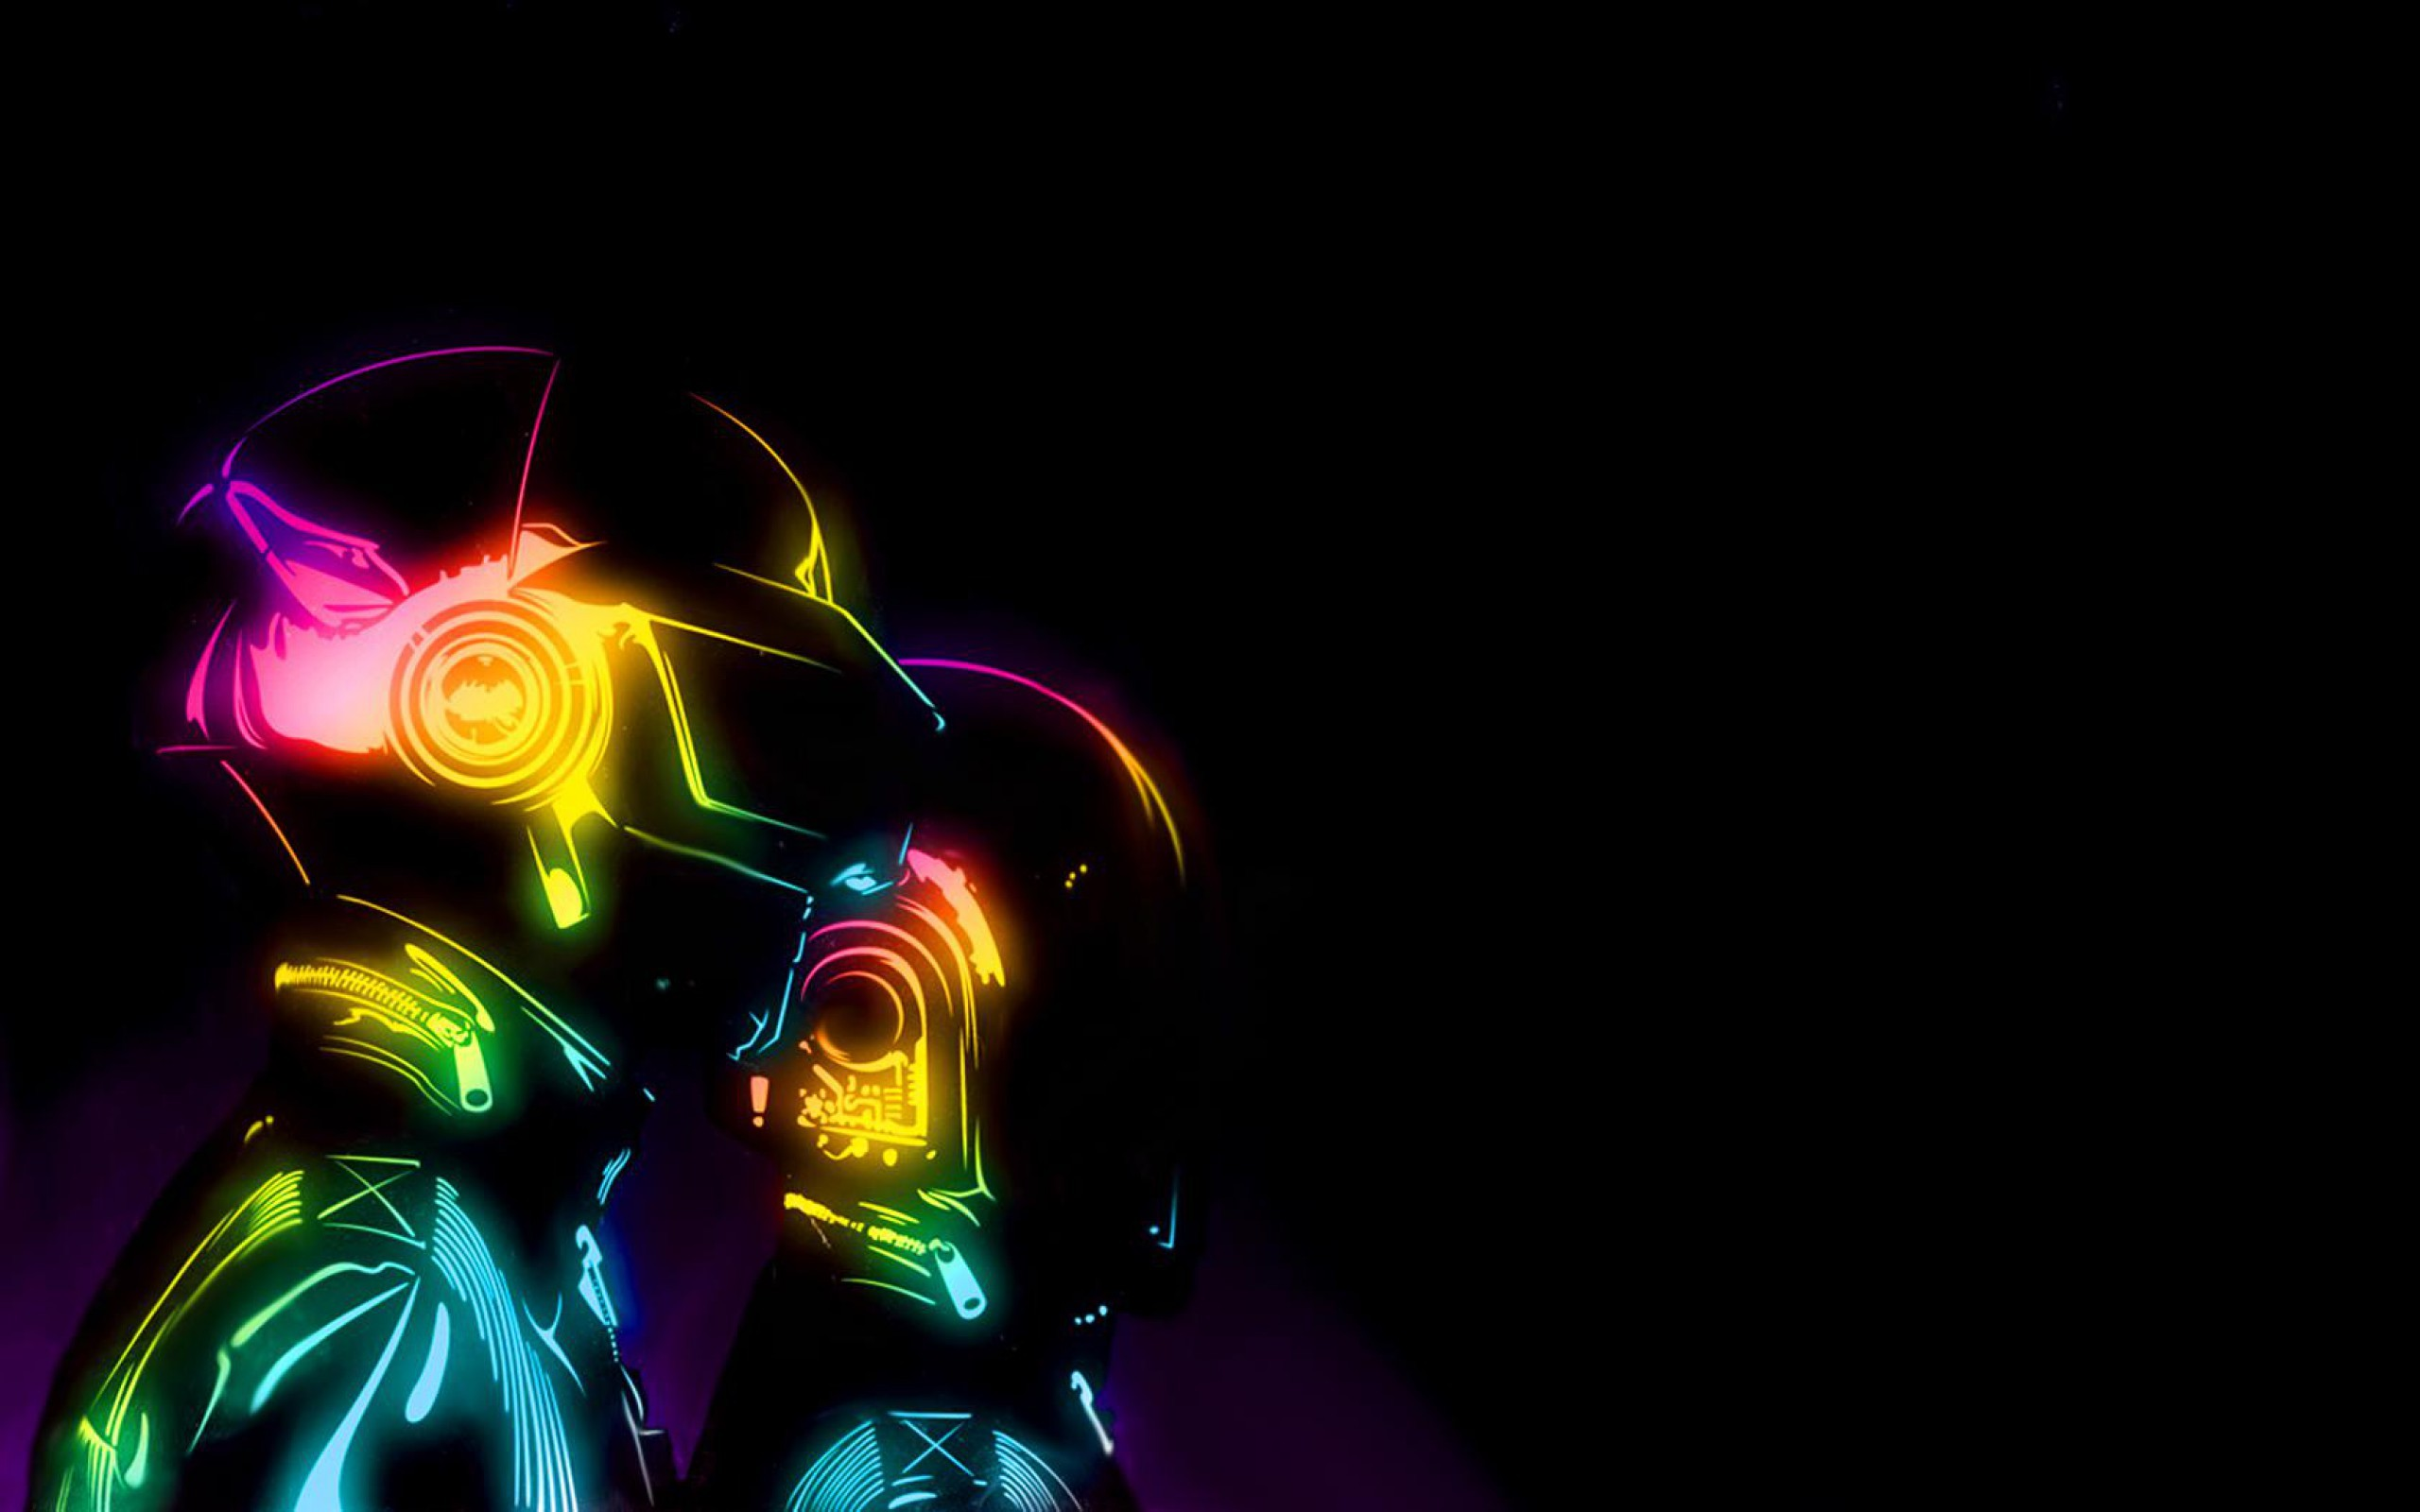 Music Neon Wallpapers Top Free Music Neon Backgrounds Wallpaperaccess